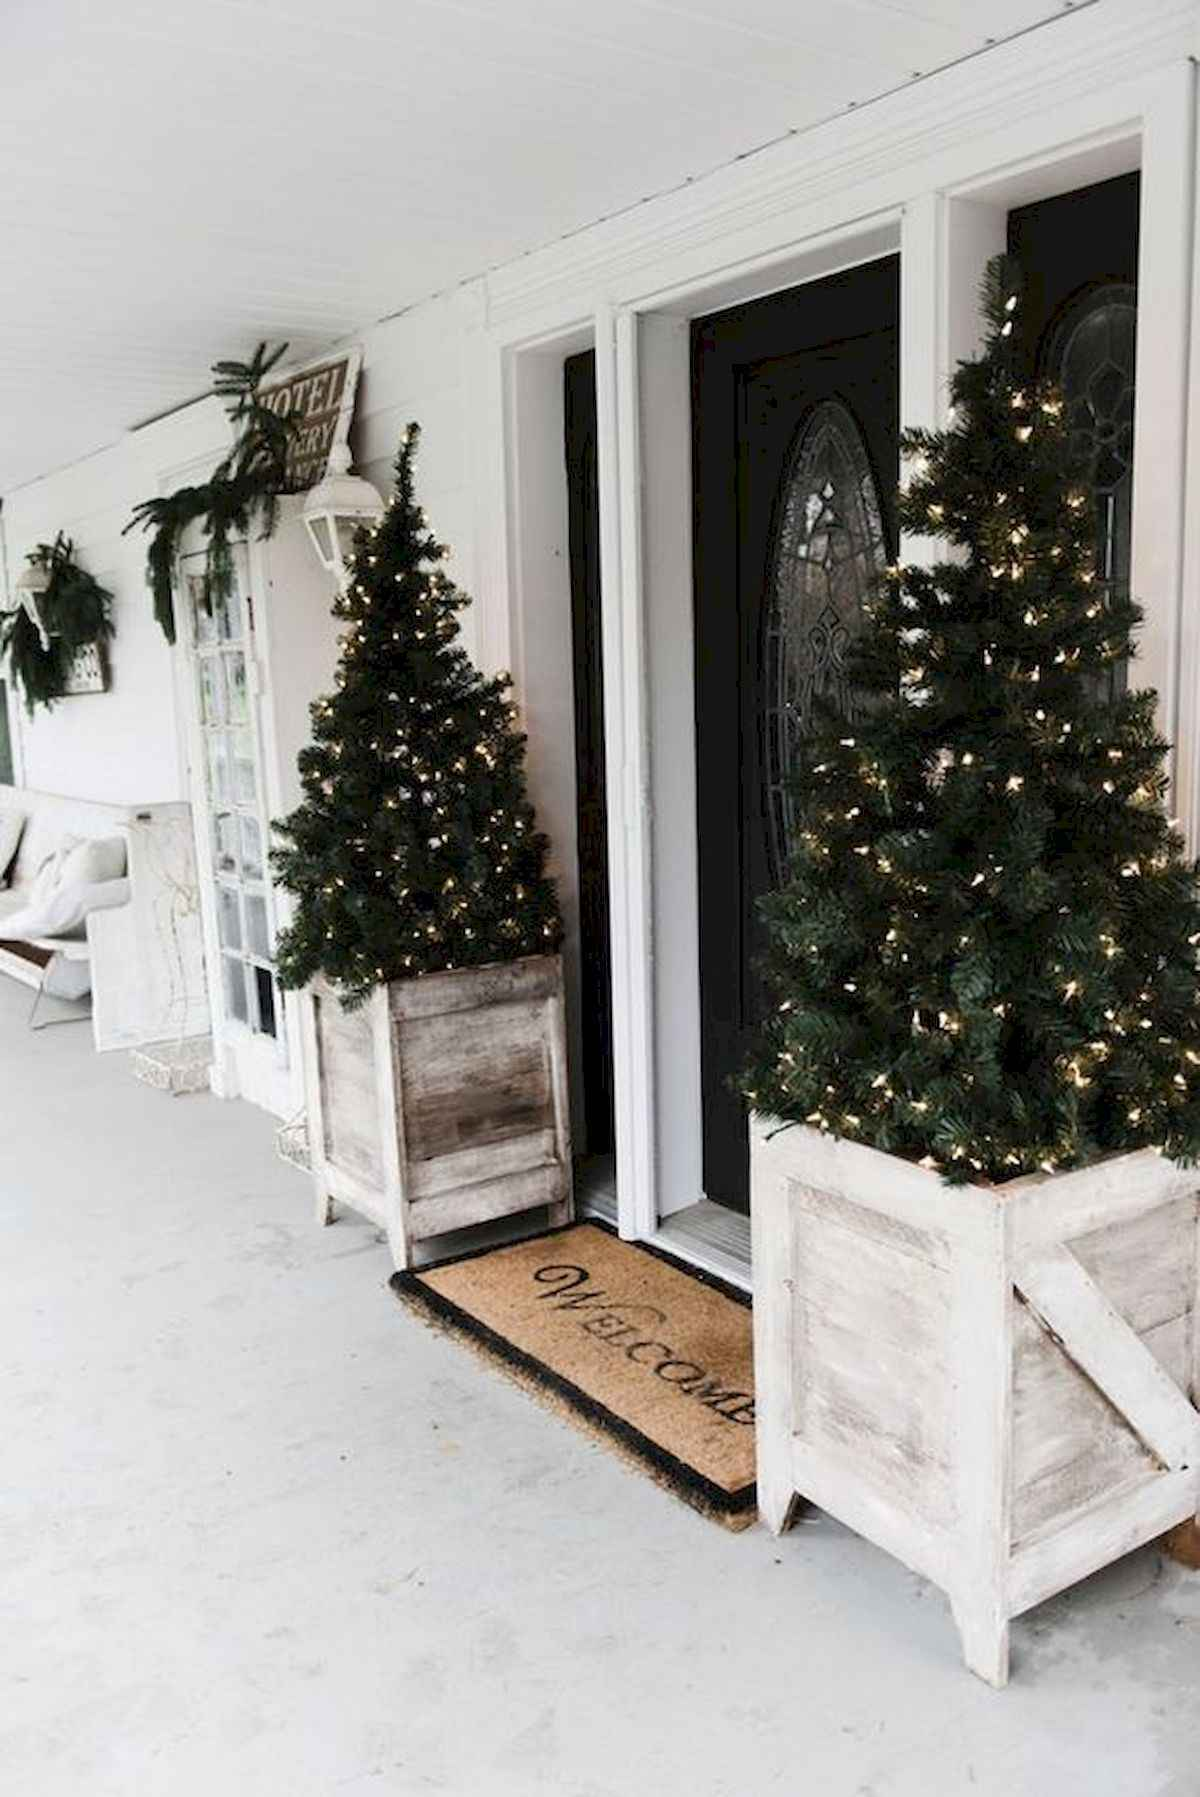 1200 1797 in 50 front porches farmhouse christmas decorations ideas